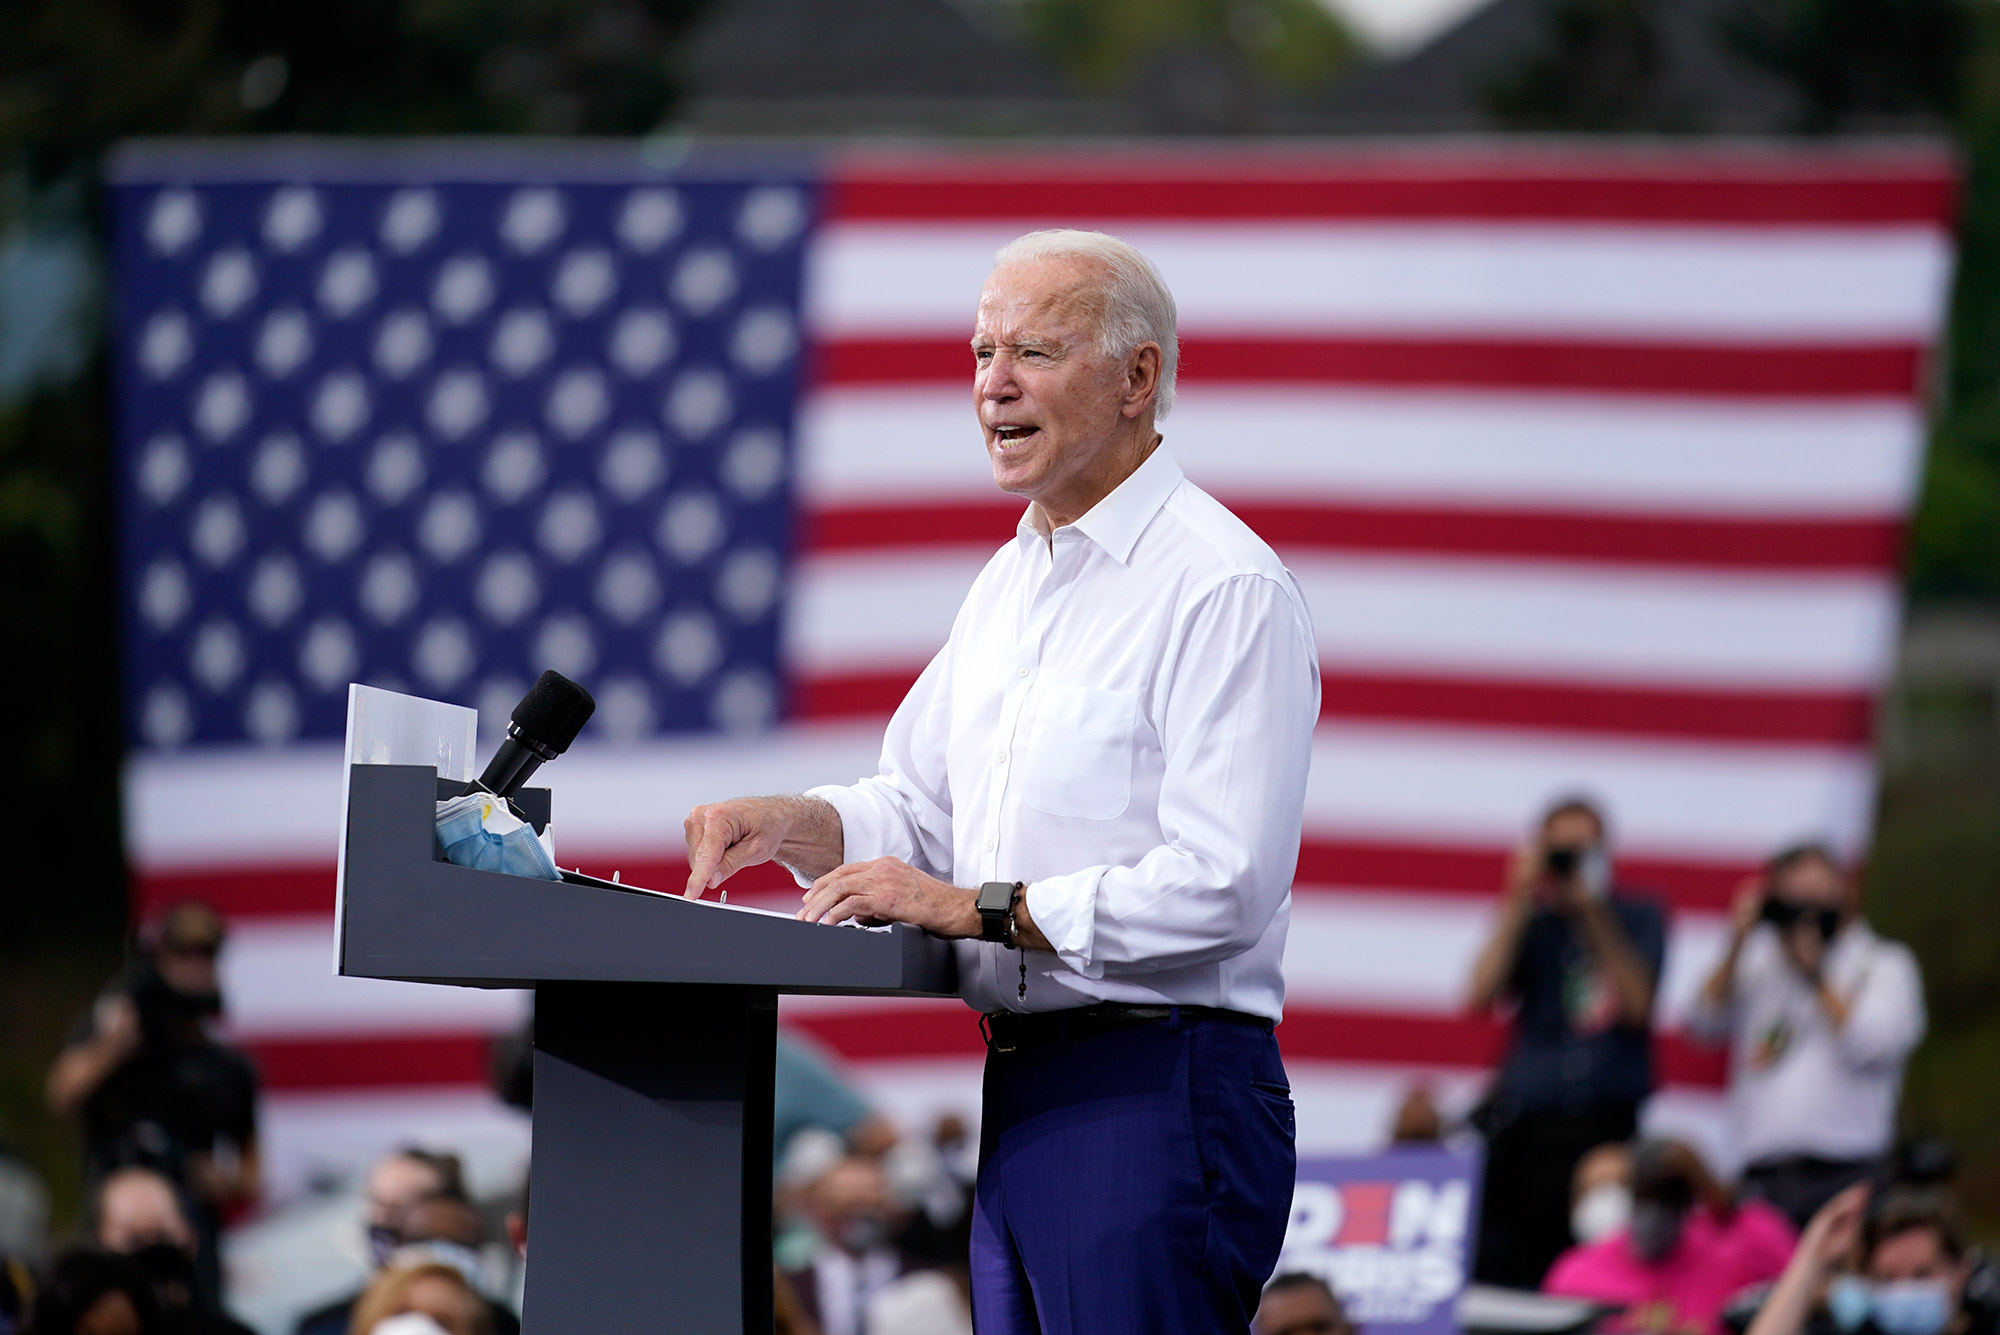 A photograph of Joe Biden giving a campaign speech at a podium with an American flag in the background